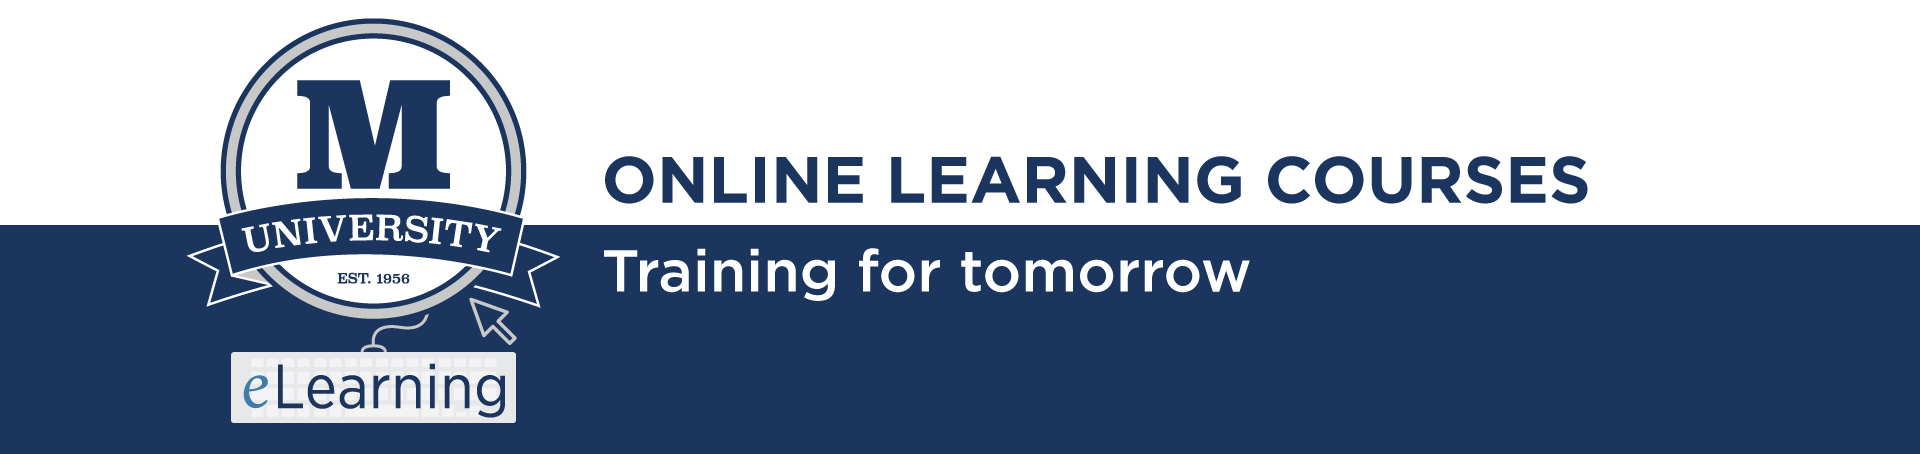 eLearning-banner-2020